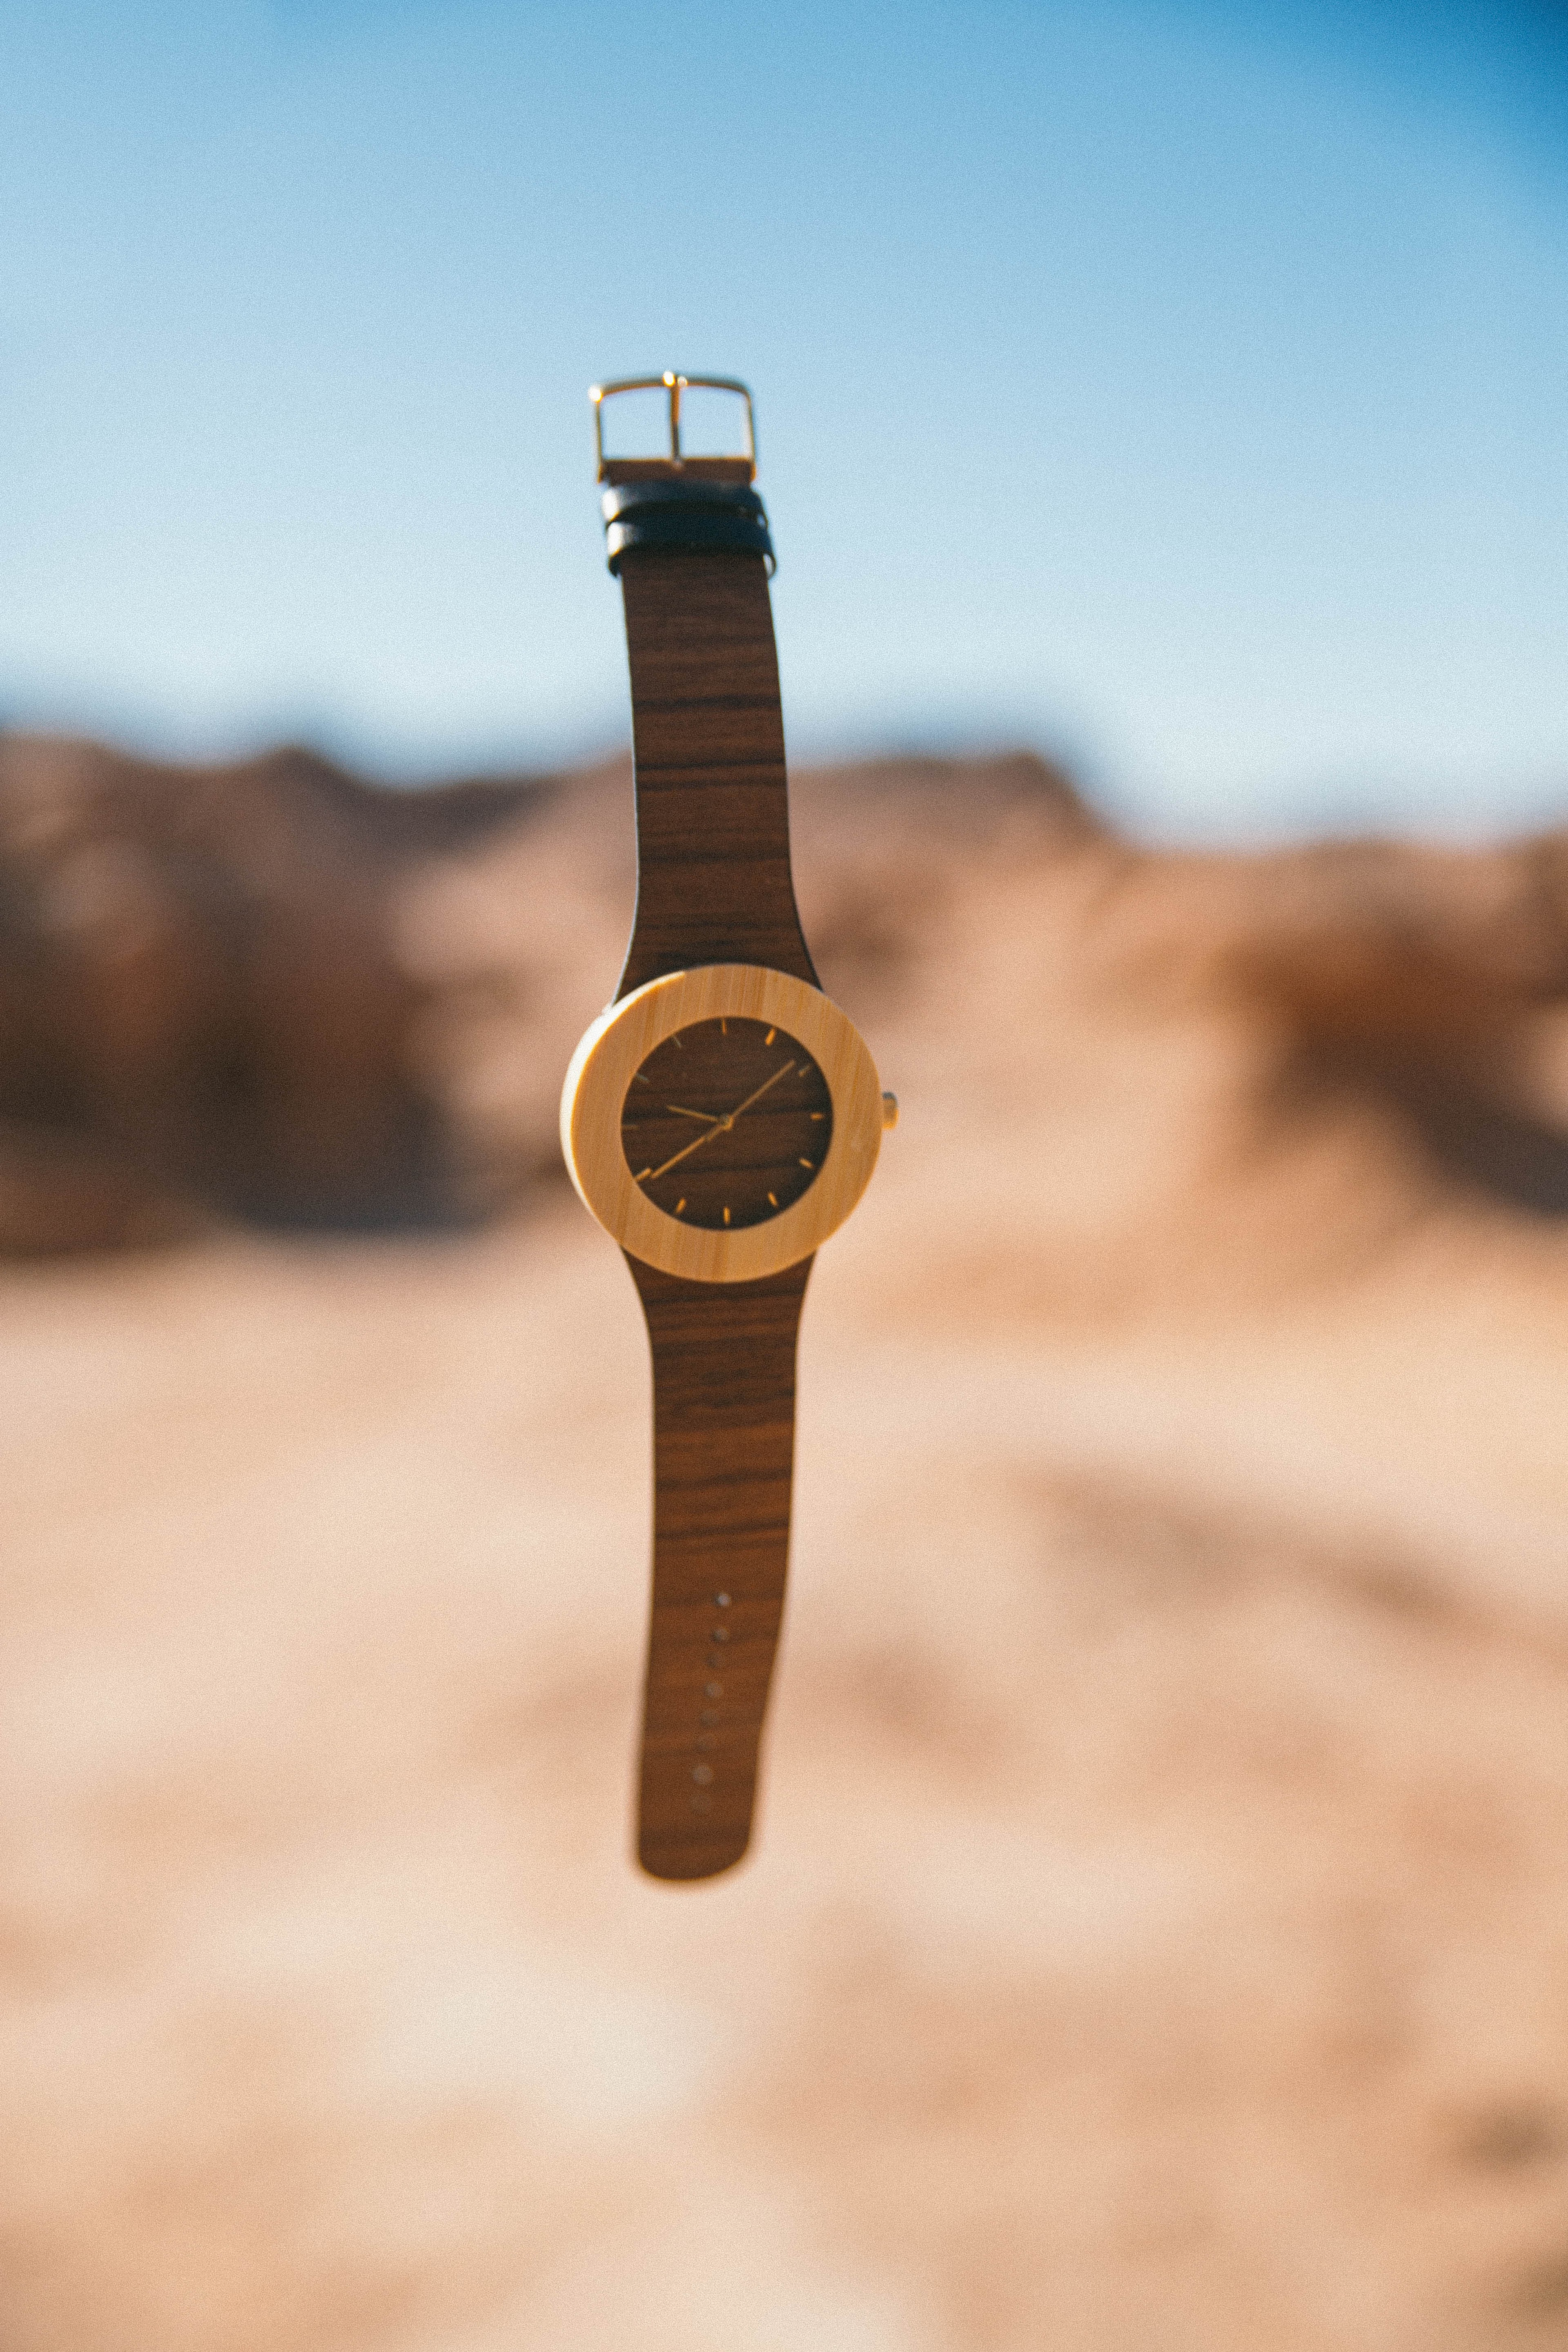 A floating watch looked like carved of wood  as the symbolic metaphor to this article's title/subtitle: The Ultimate Trip Back in Time, An inventive virtual journey of an architecture addict's arch-zeal